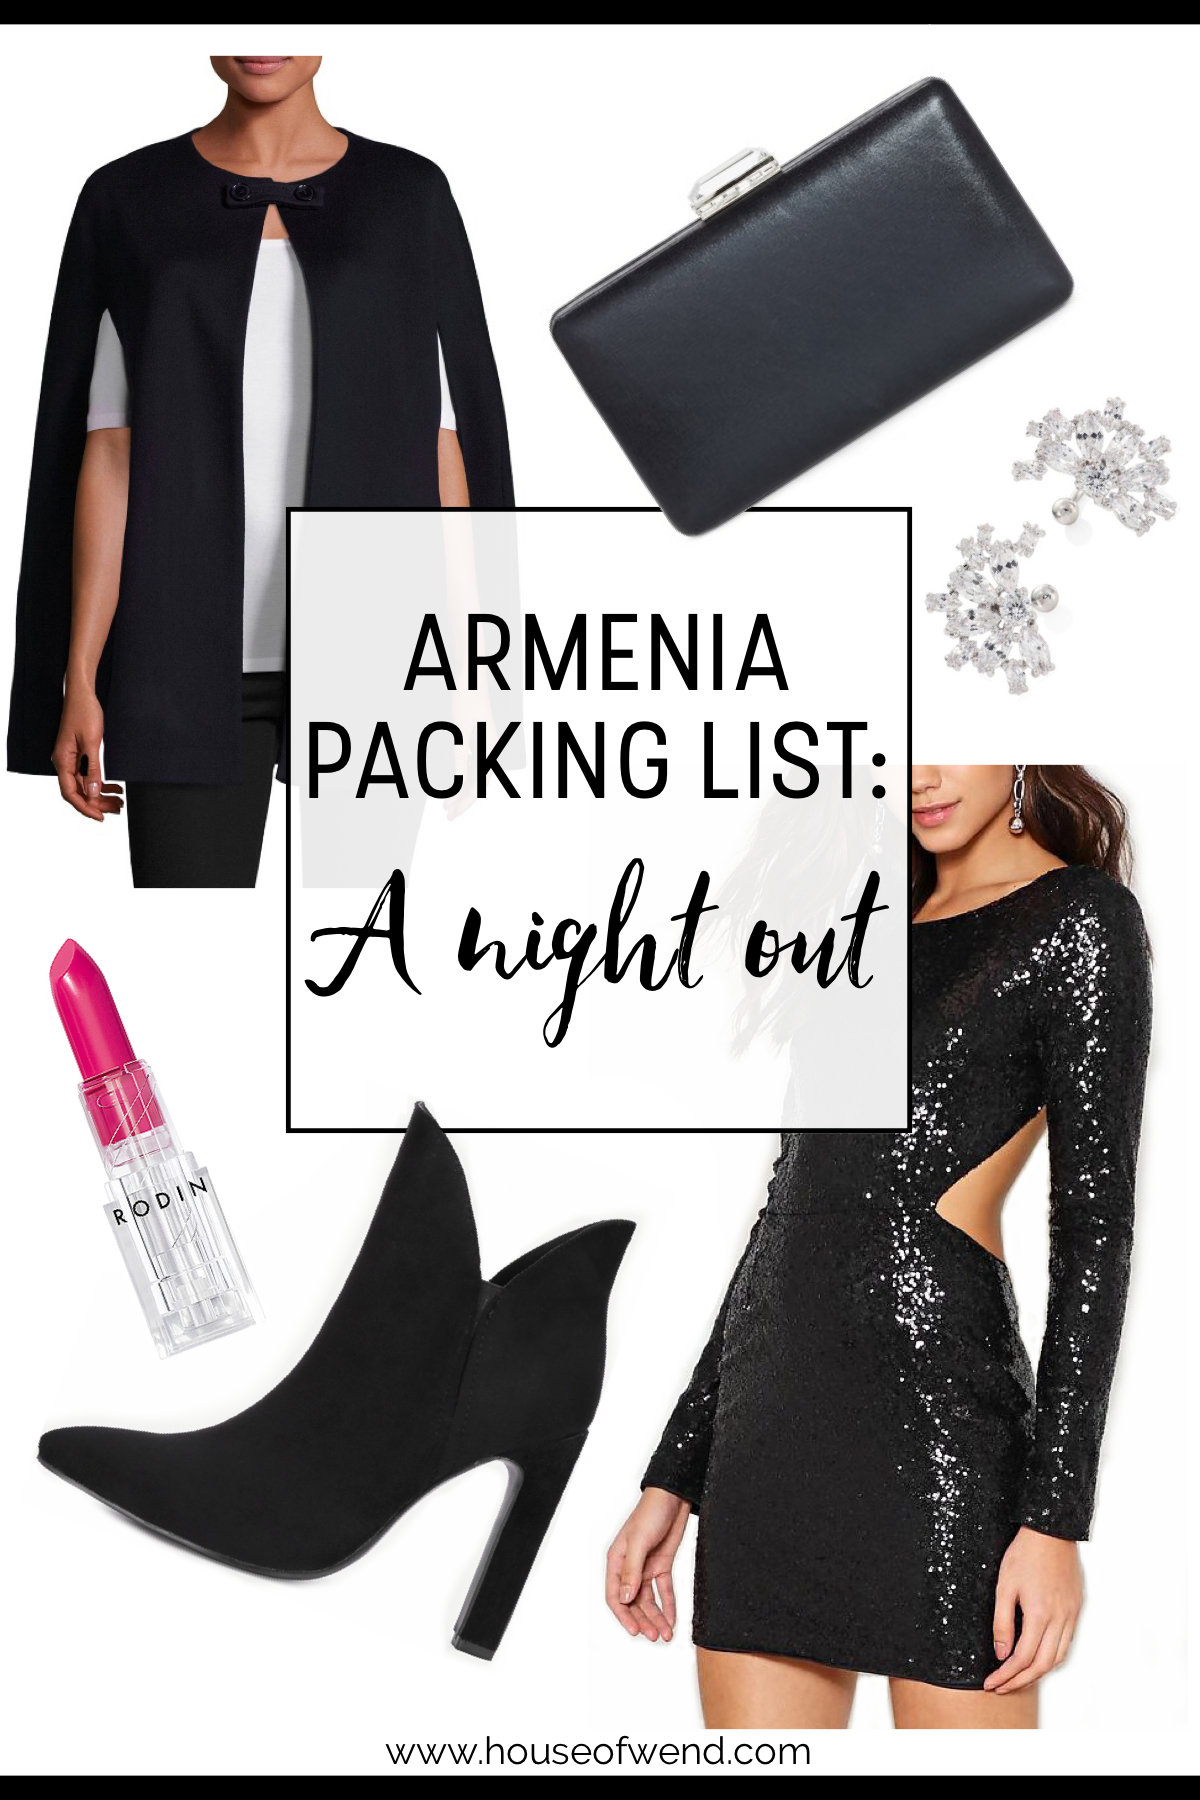 Armenia packing list for a night out